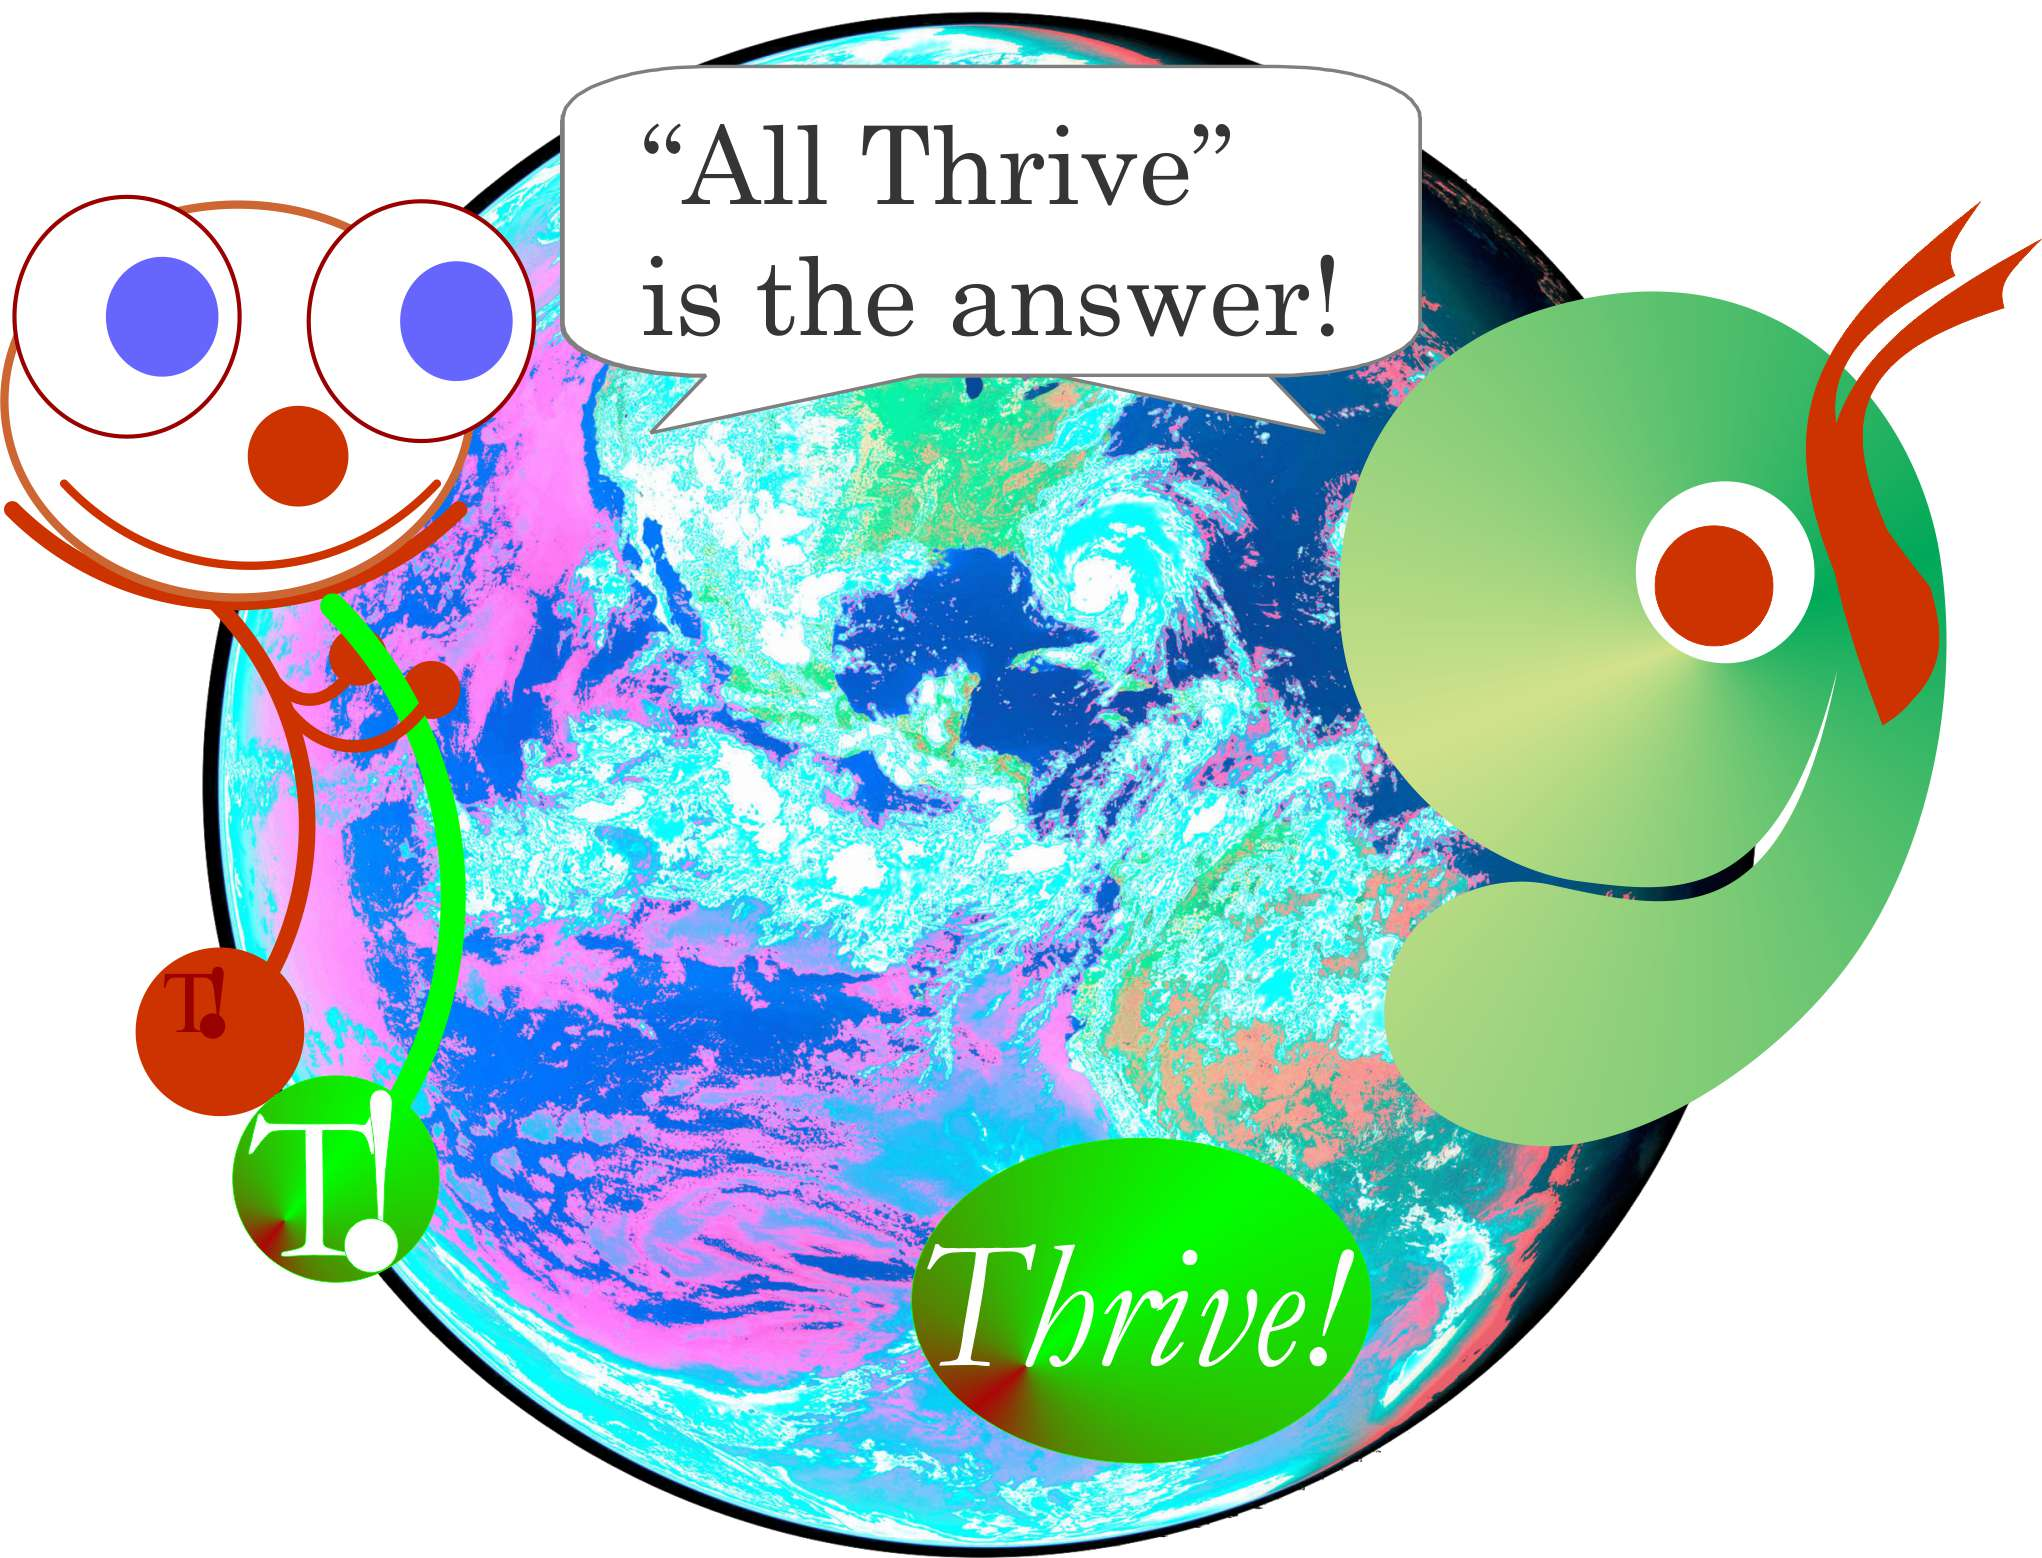 Thrive or Not to Thrive?